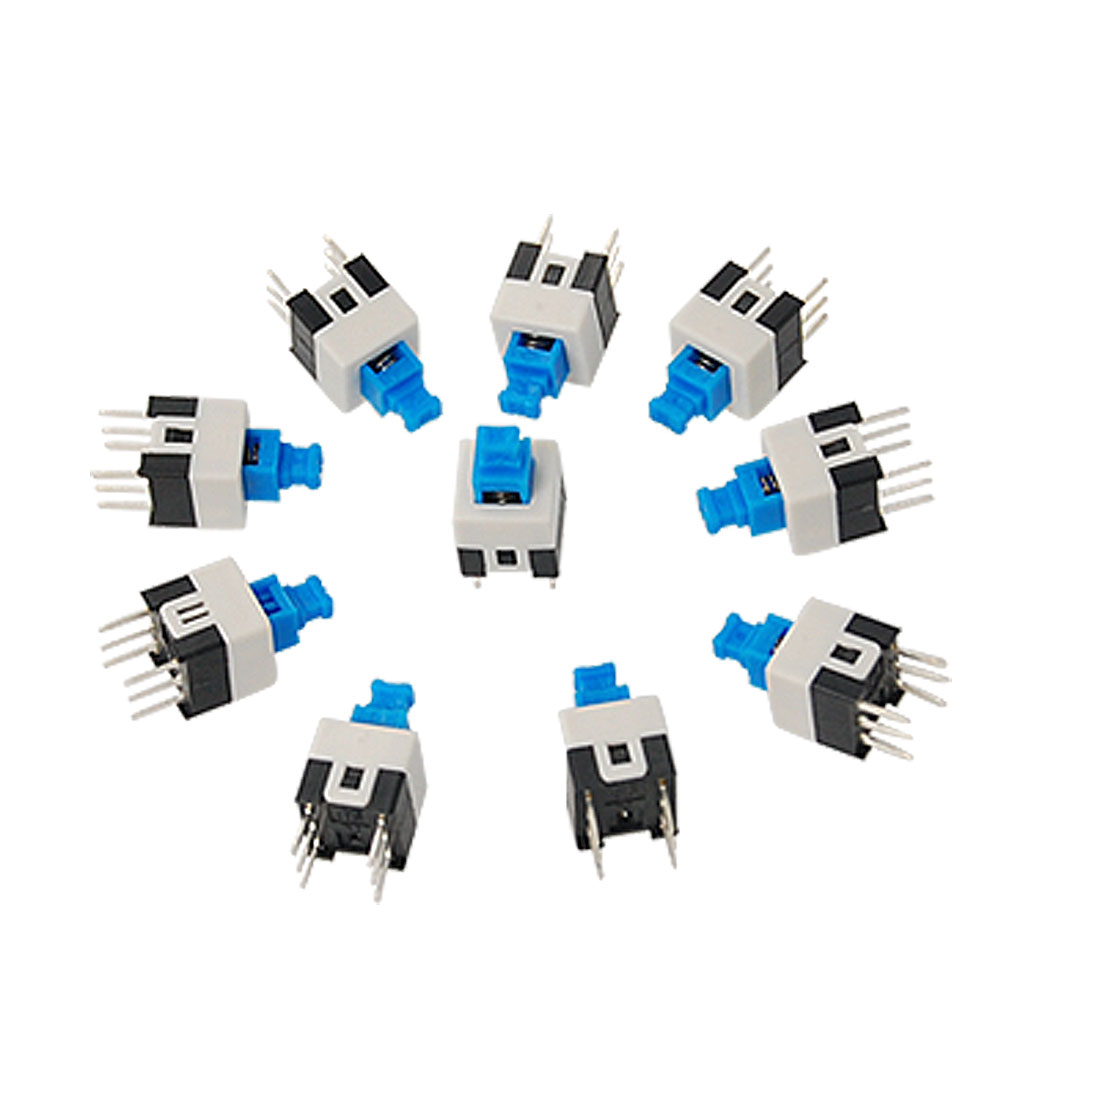 10 Pcs 7 x 7mm PCB Momentary Tact Tactile Push Button Switch Non Lock 6 Pin DIP